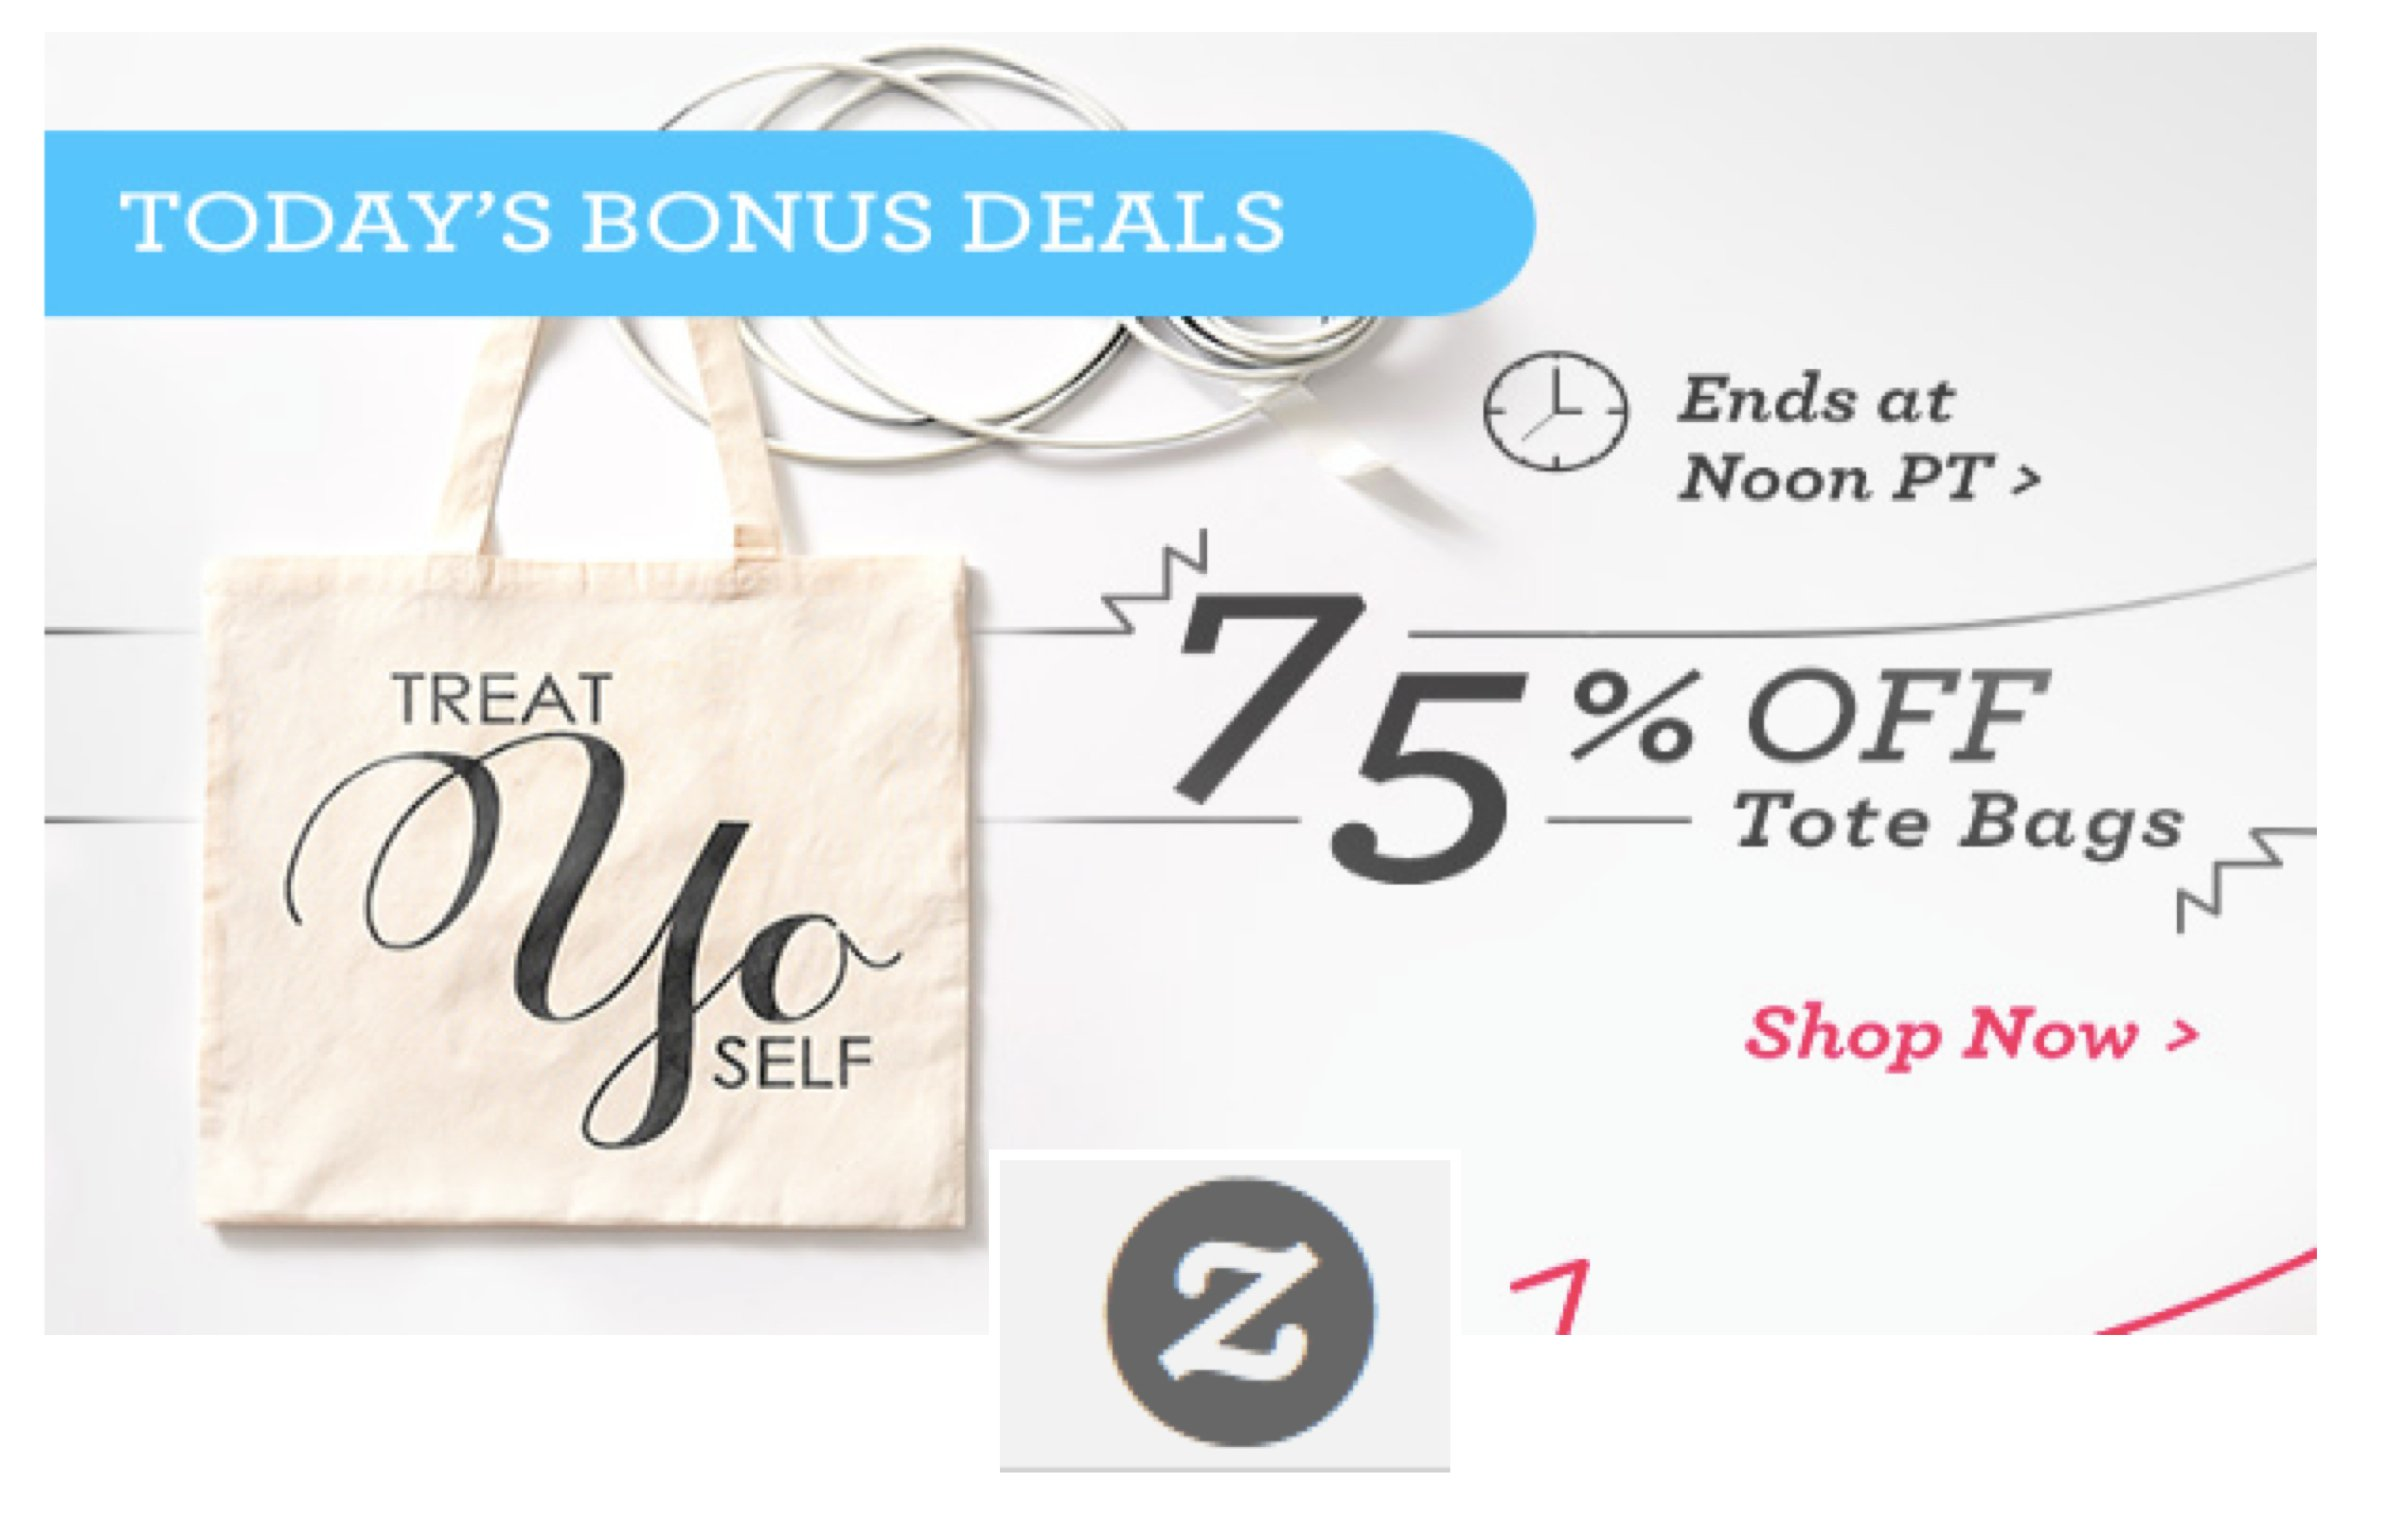 75% OFF Zazzle Tote Bags on Cyber Monday